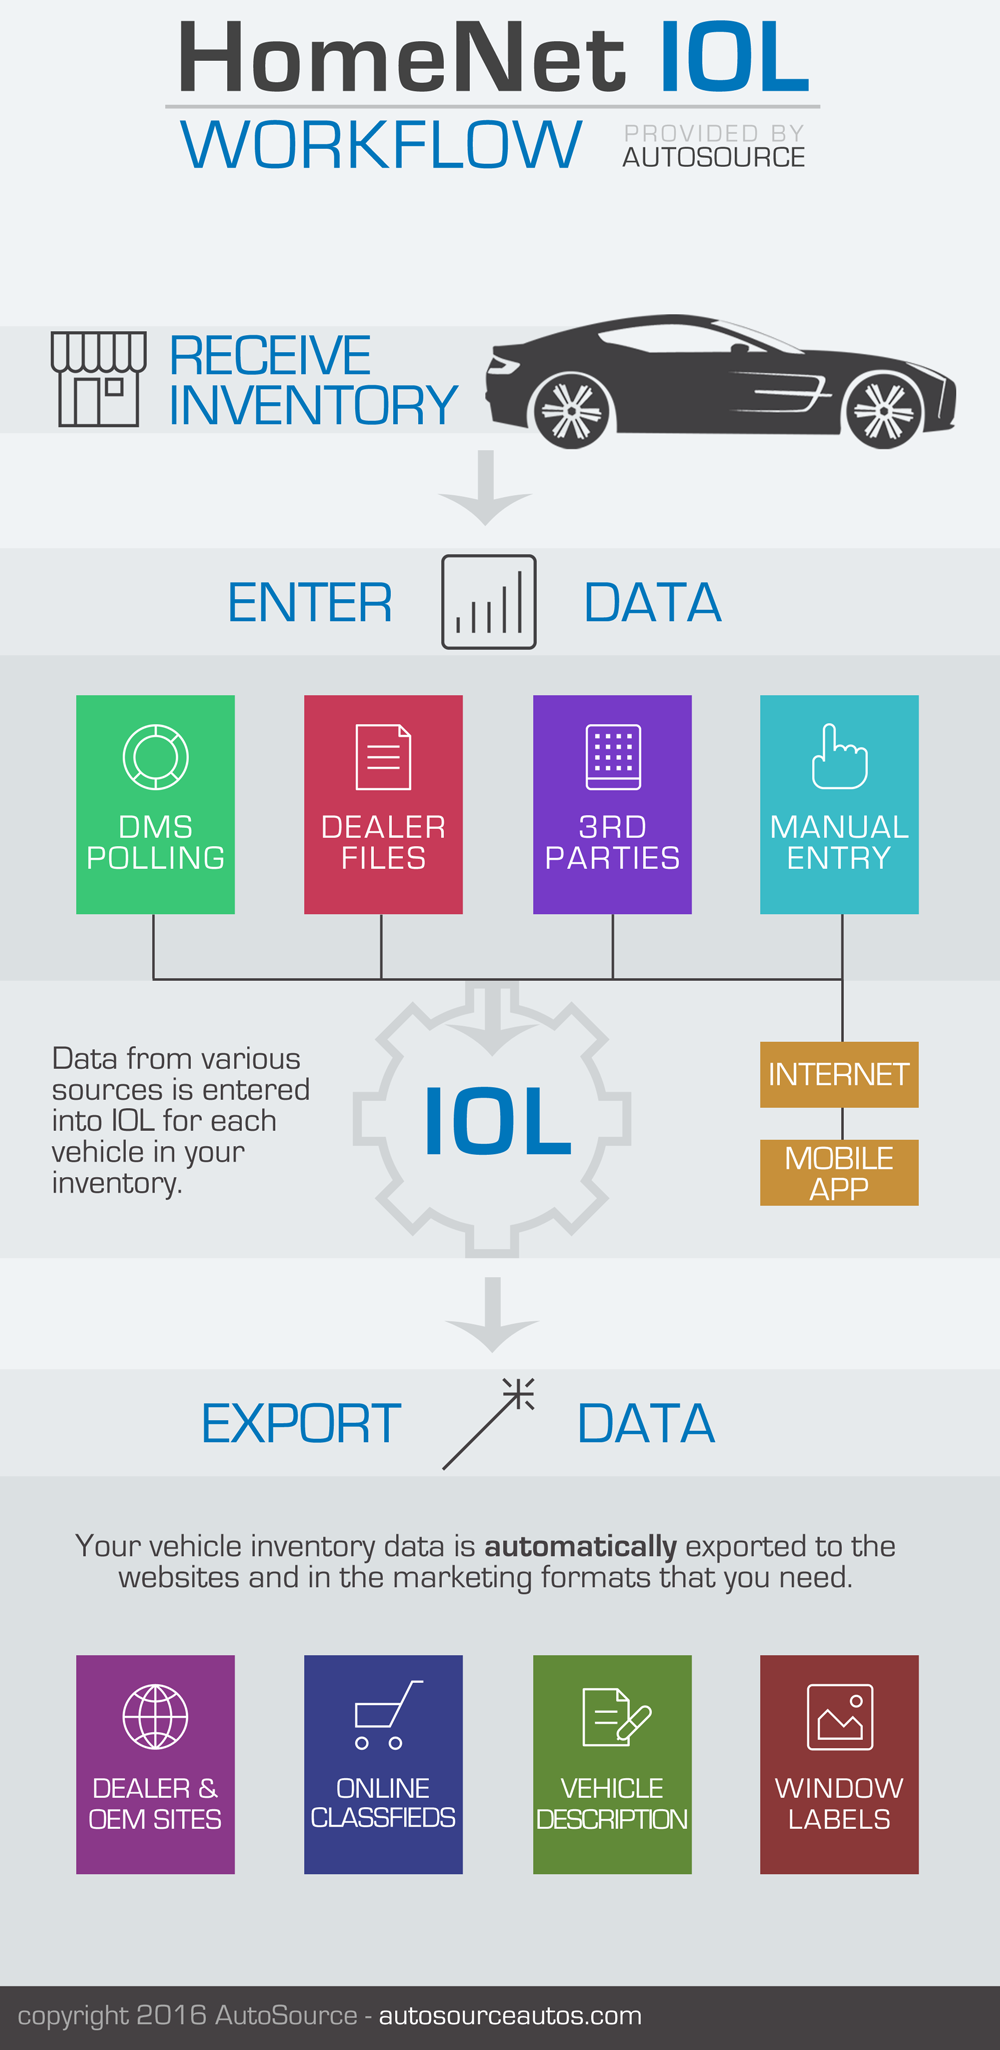 HomeNet IOL Workflow Infographic by AutoSource